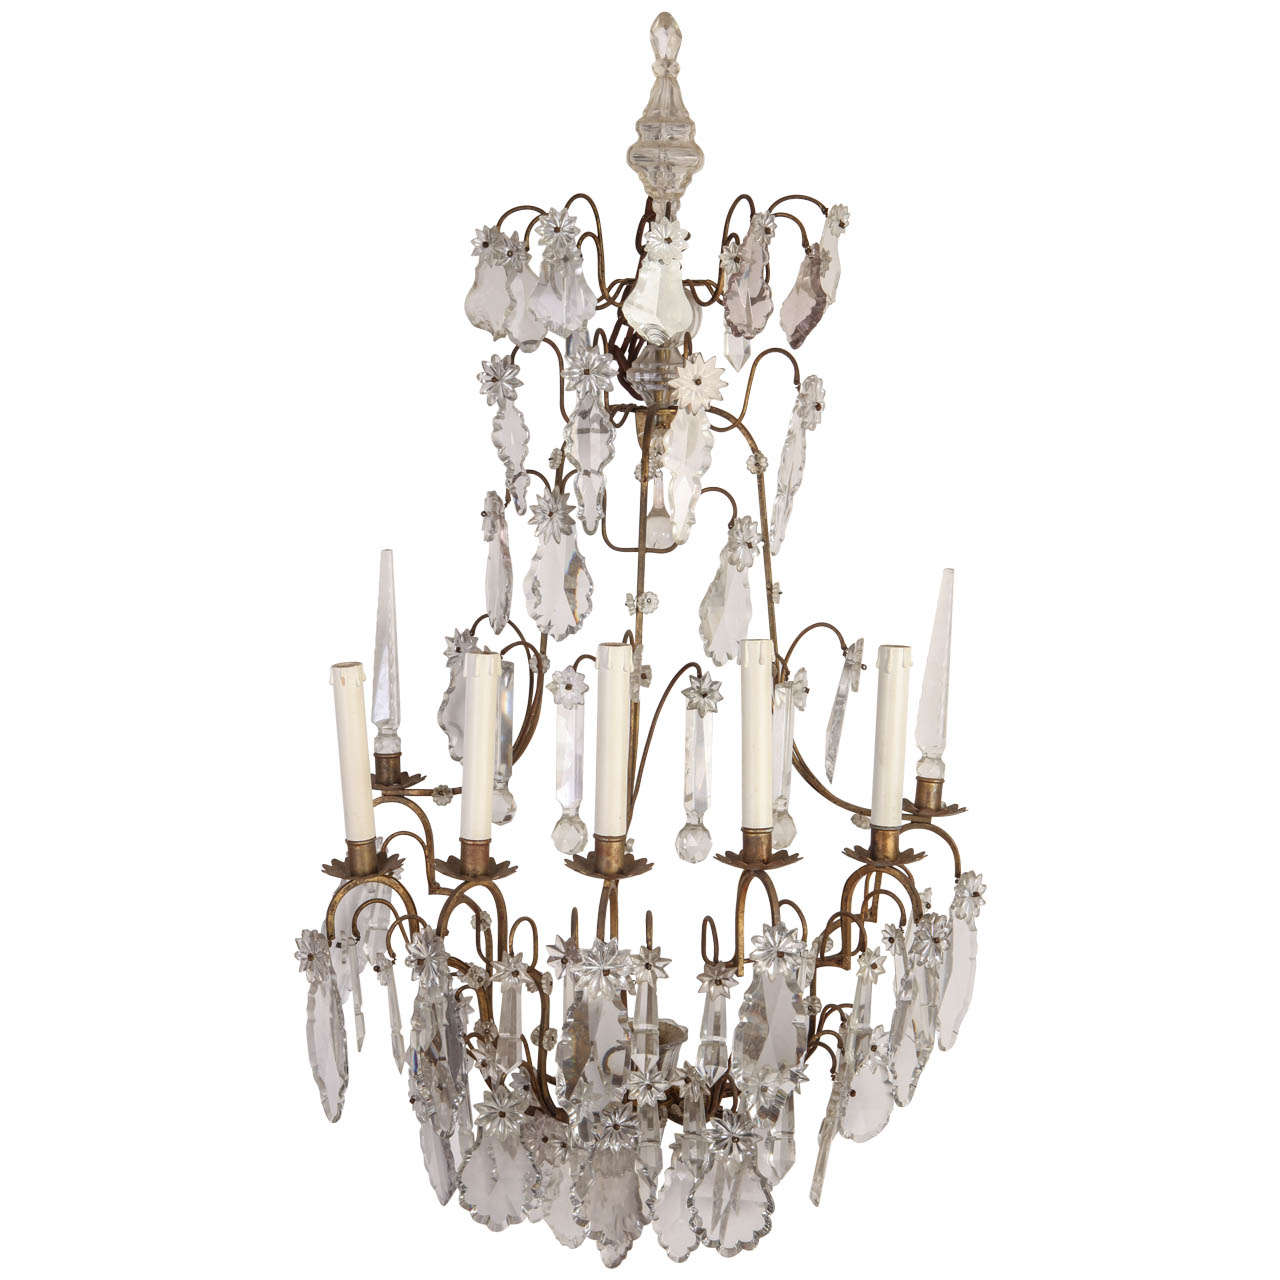 Fine Continental Five Branch Cut-Glass Wall Lights For Sale at 1stdibs